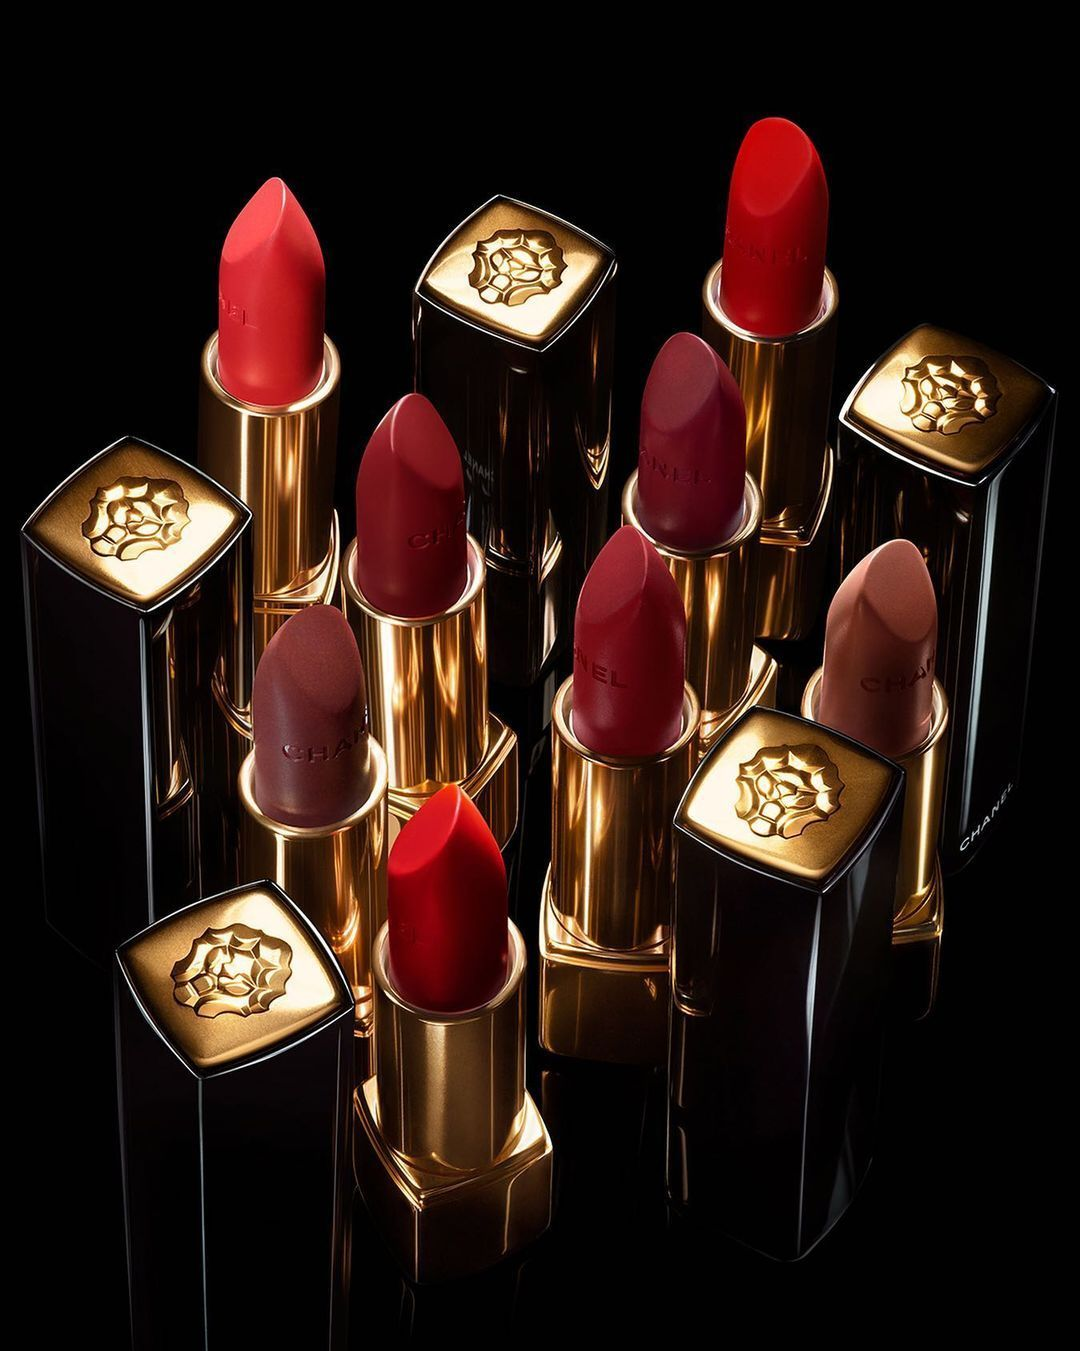 Find Your Perfect Shade Of Chanel Rouge With This Lipscanner App